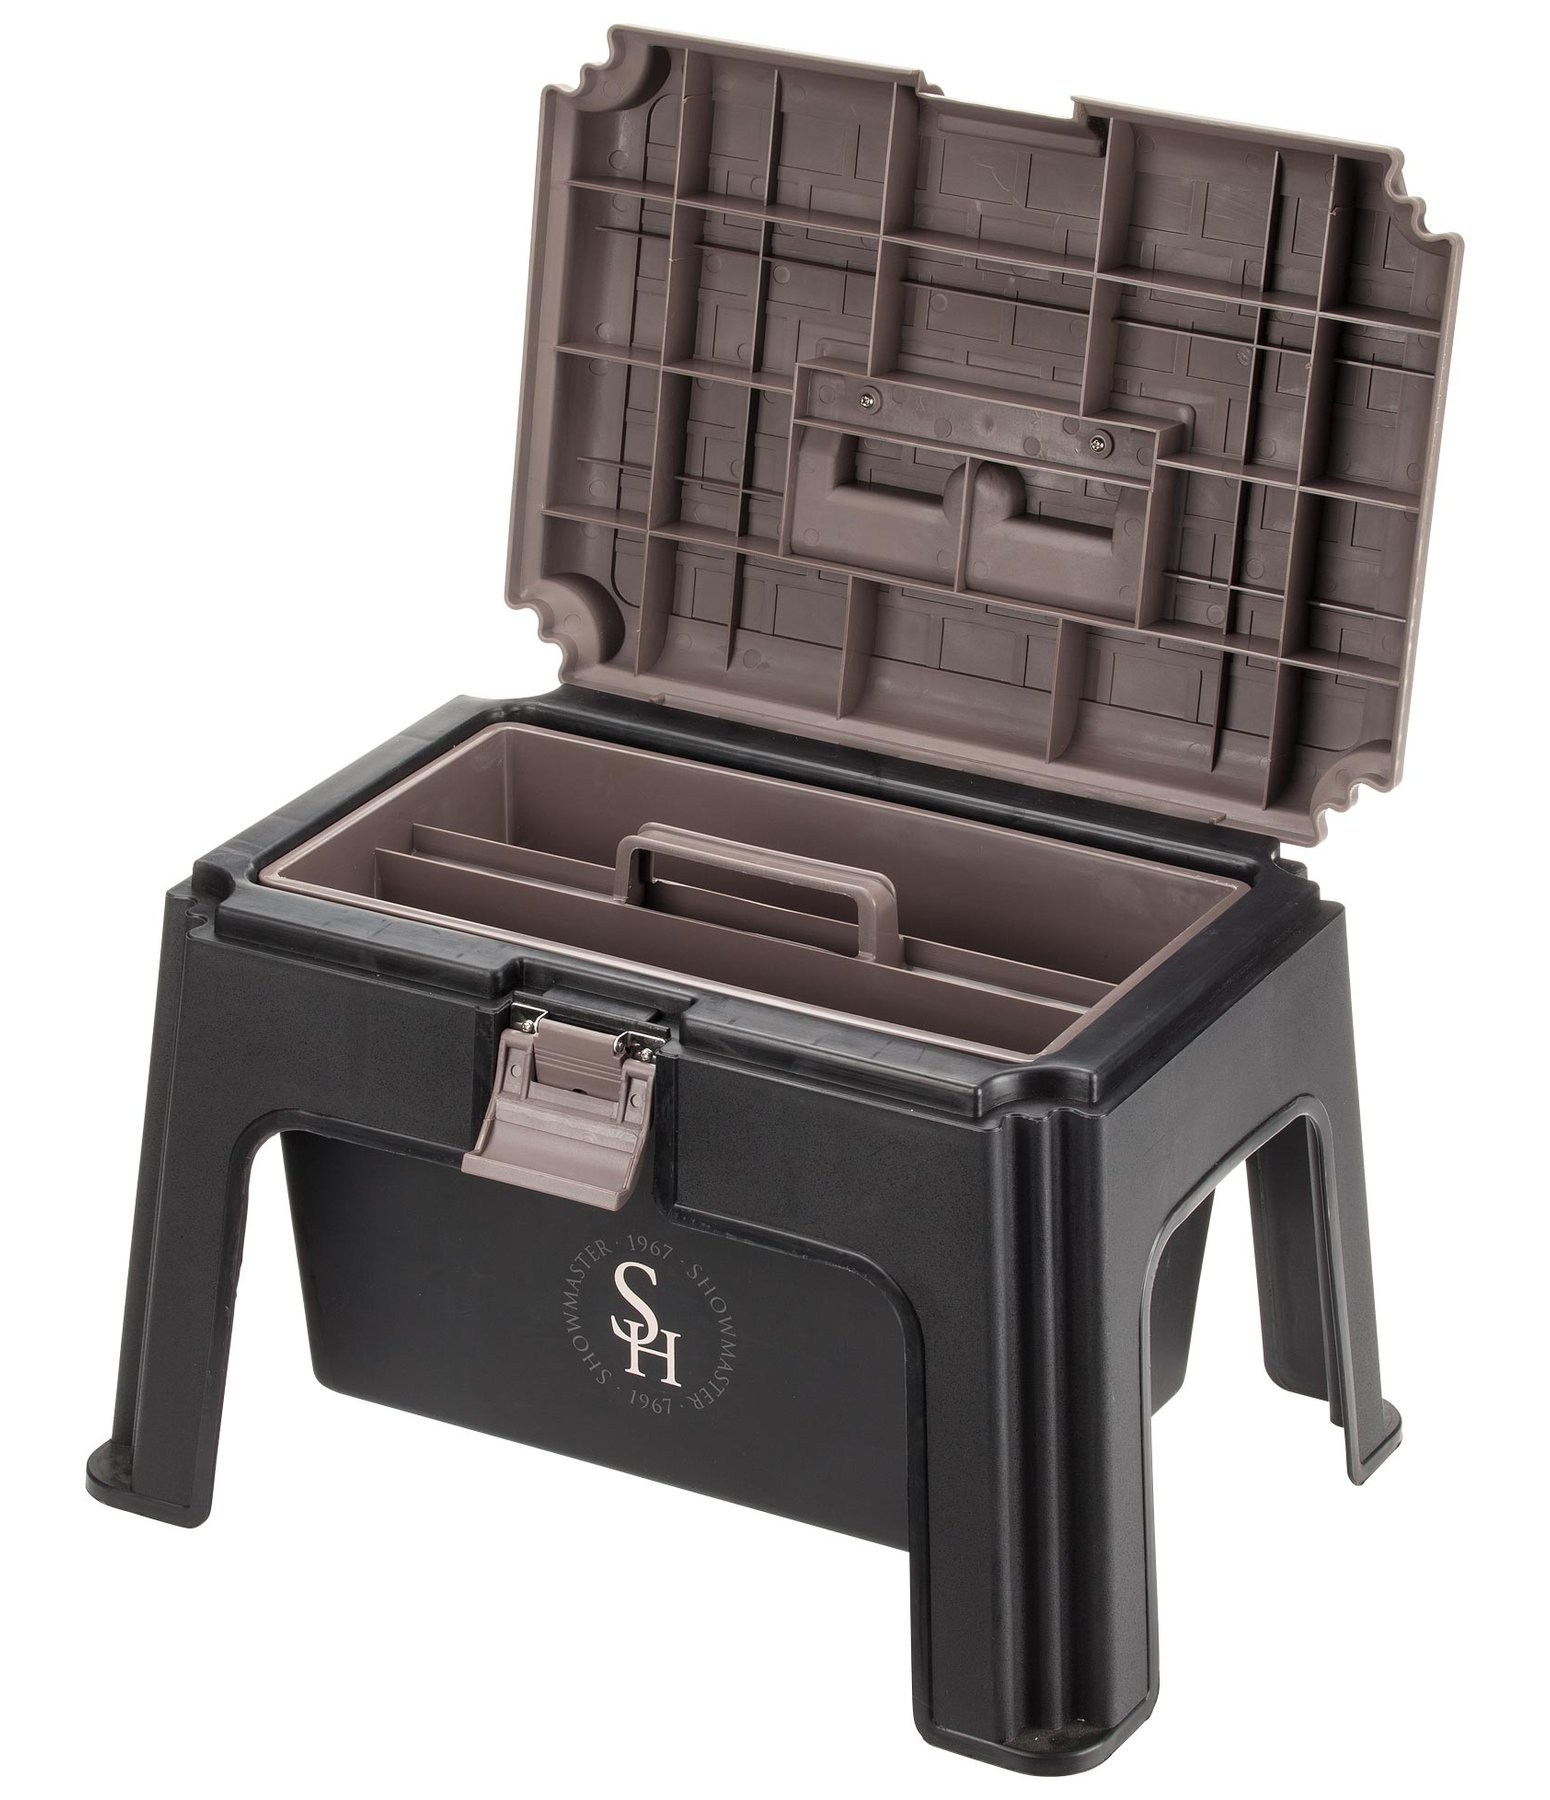 Small Step Stool With Handle